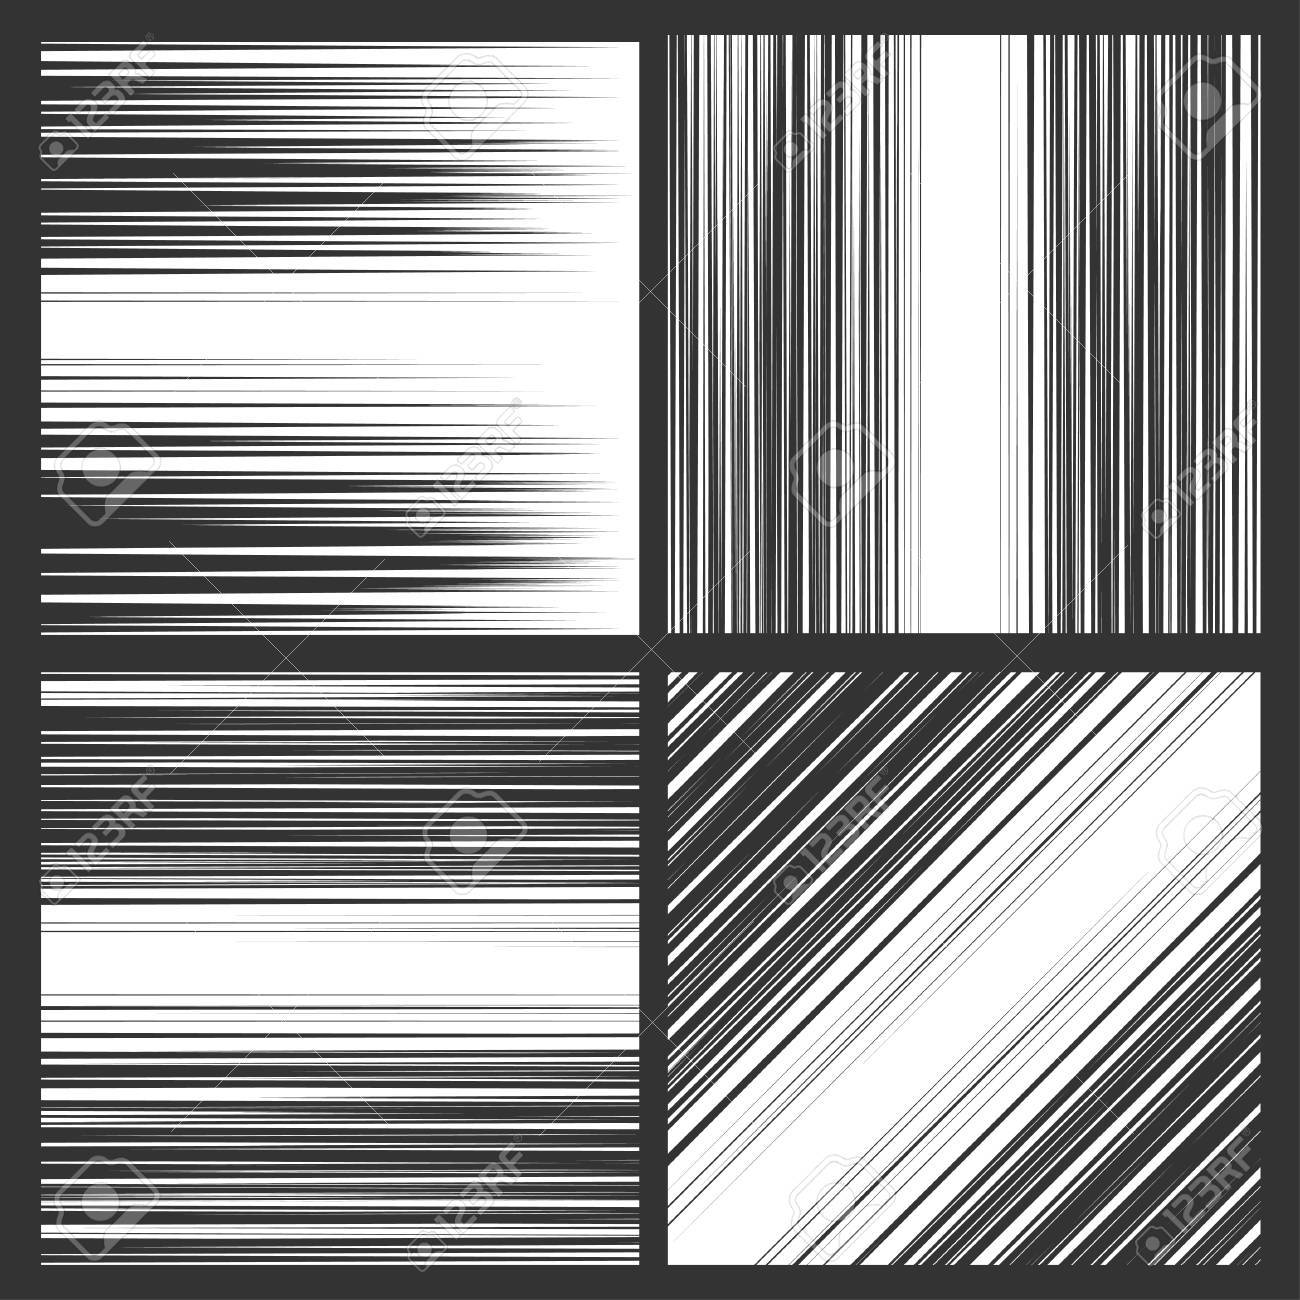 Comic book speed horizontal, vertical and diagonal lines background - 49648199